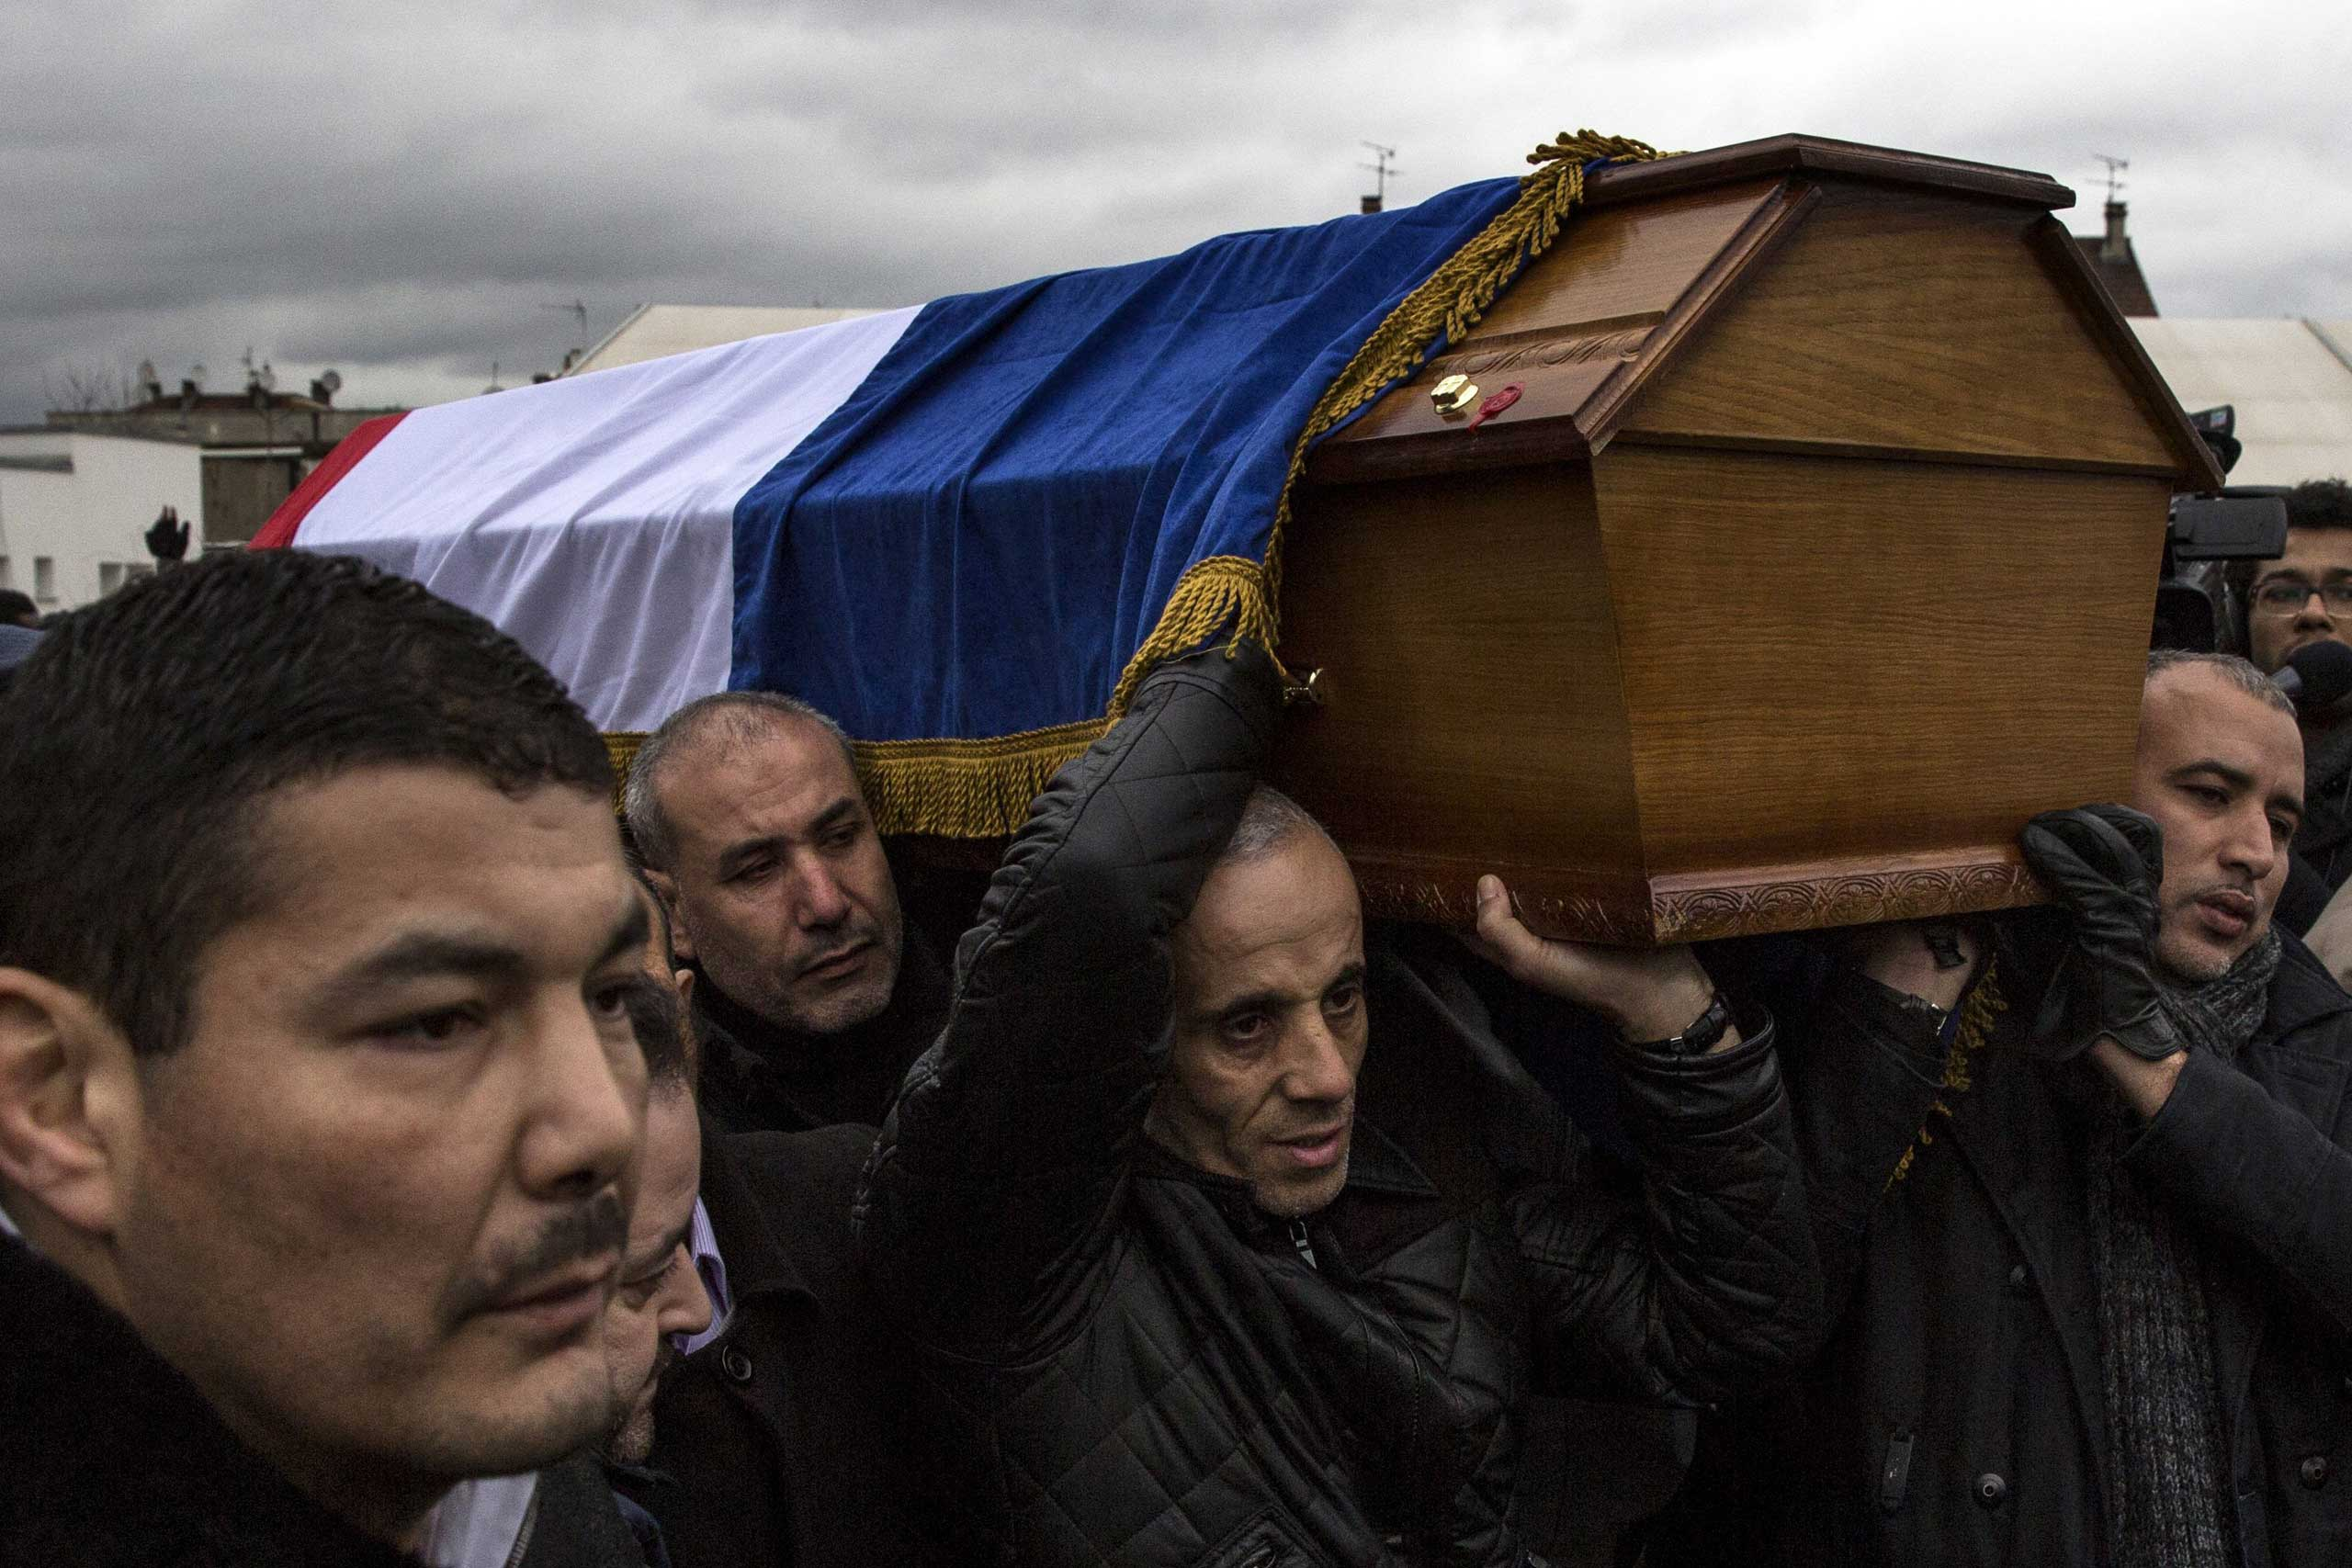 The funeral of murdered police officer Ahmed Merabet takes place at a Muslim cemetery in Bobigny, France, on Jan. 13, 2015.